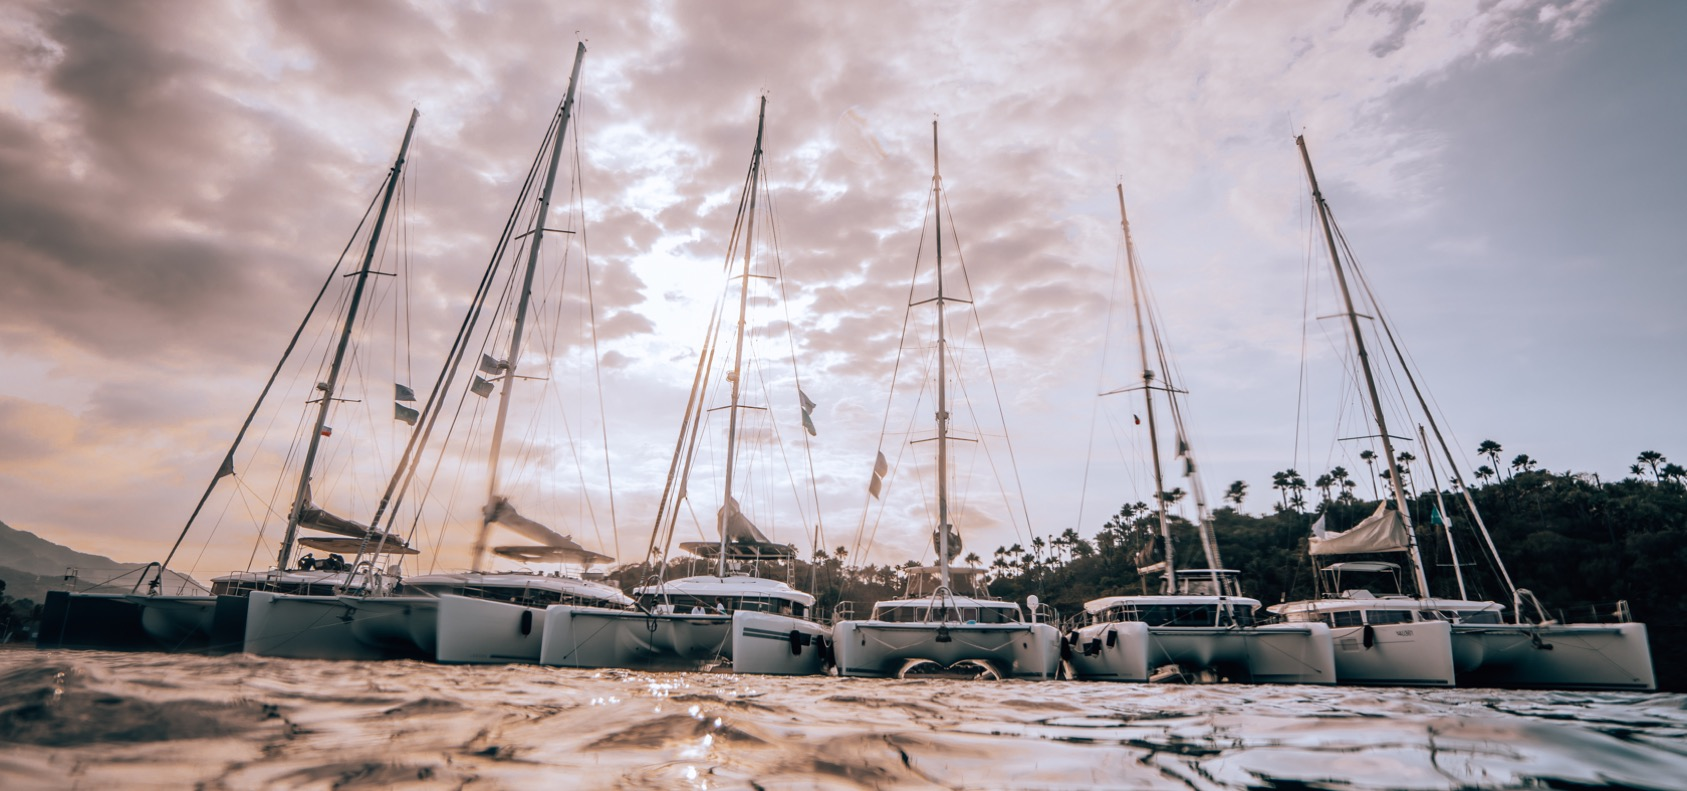 All About Hulls: The Captain's Guide to Boat Hull Types and Their Purposes